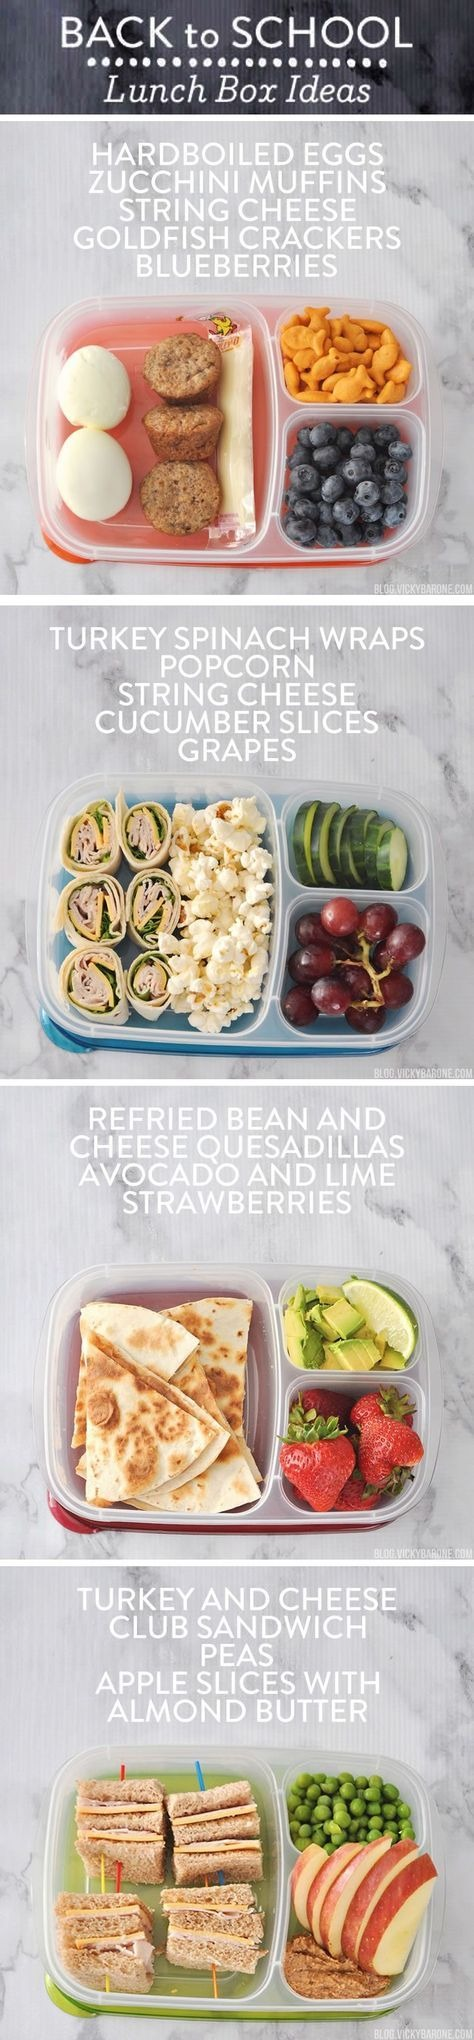 Yummy packed lunch ideas for when you're stumped on what to send your kiddo to school with. Packed in /easylunchboxes/, these lunch combinations have fruits, veggies, and protein to give your little ones the nutrition and energy to tackle the day without sacrificing taste.